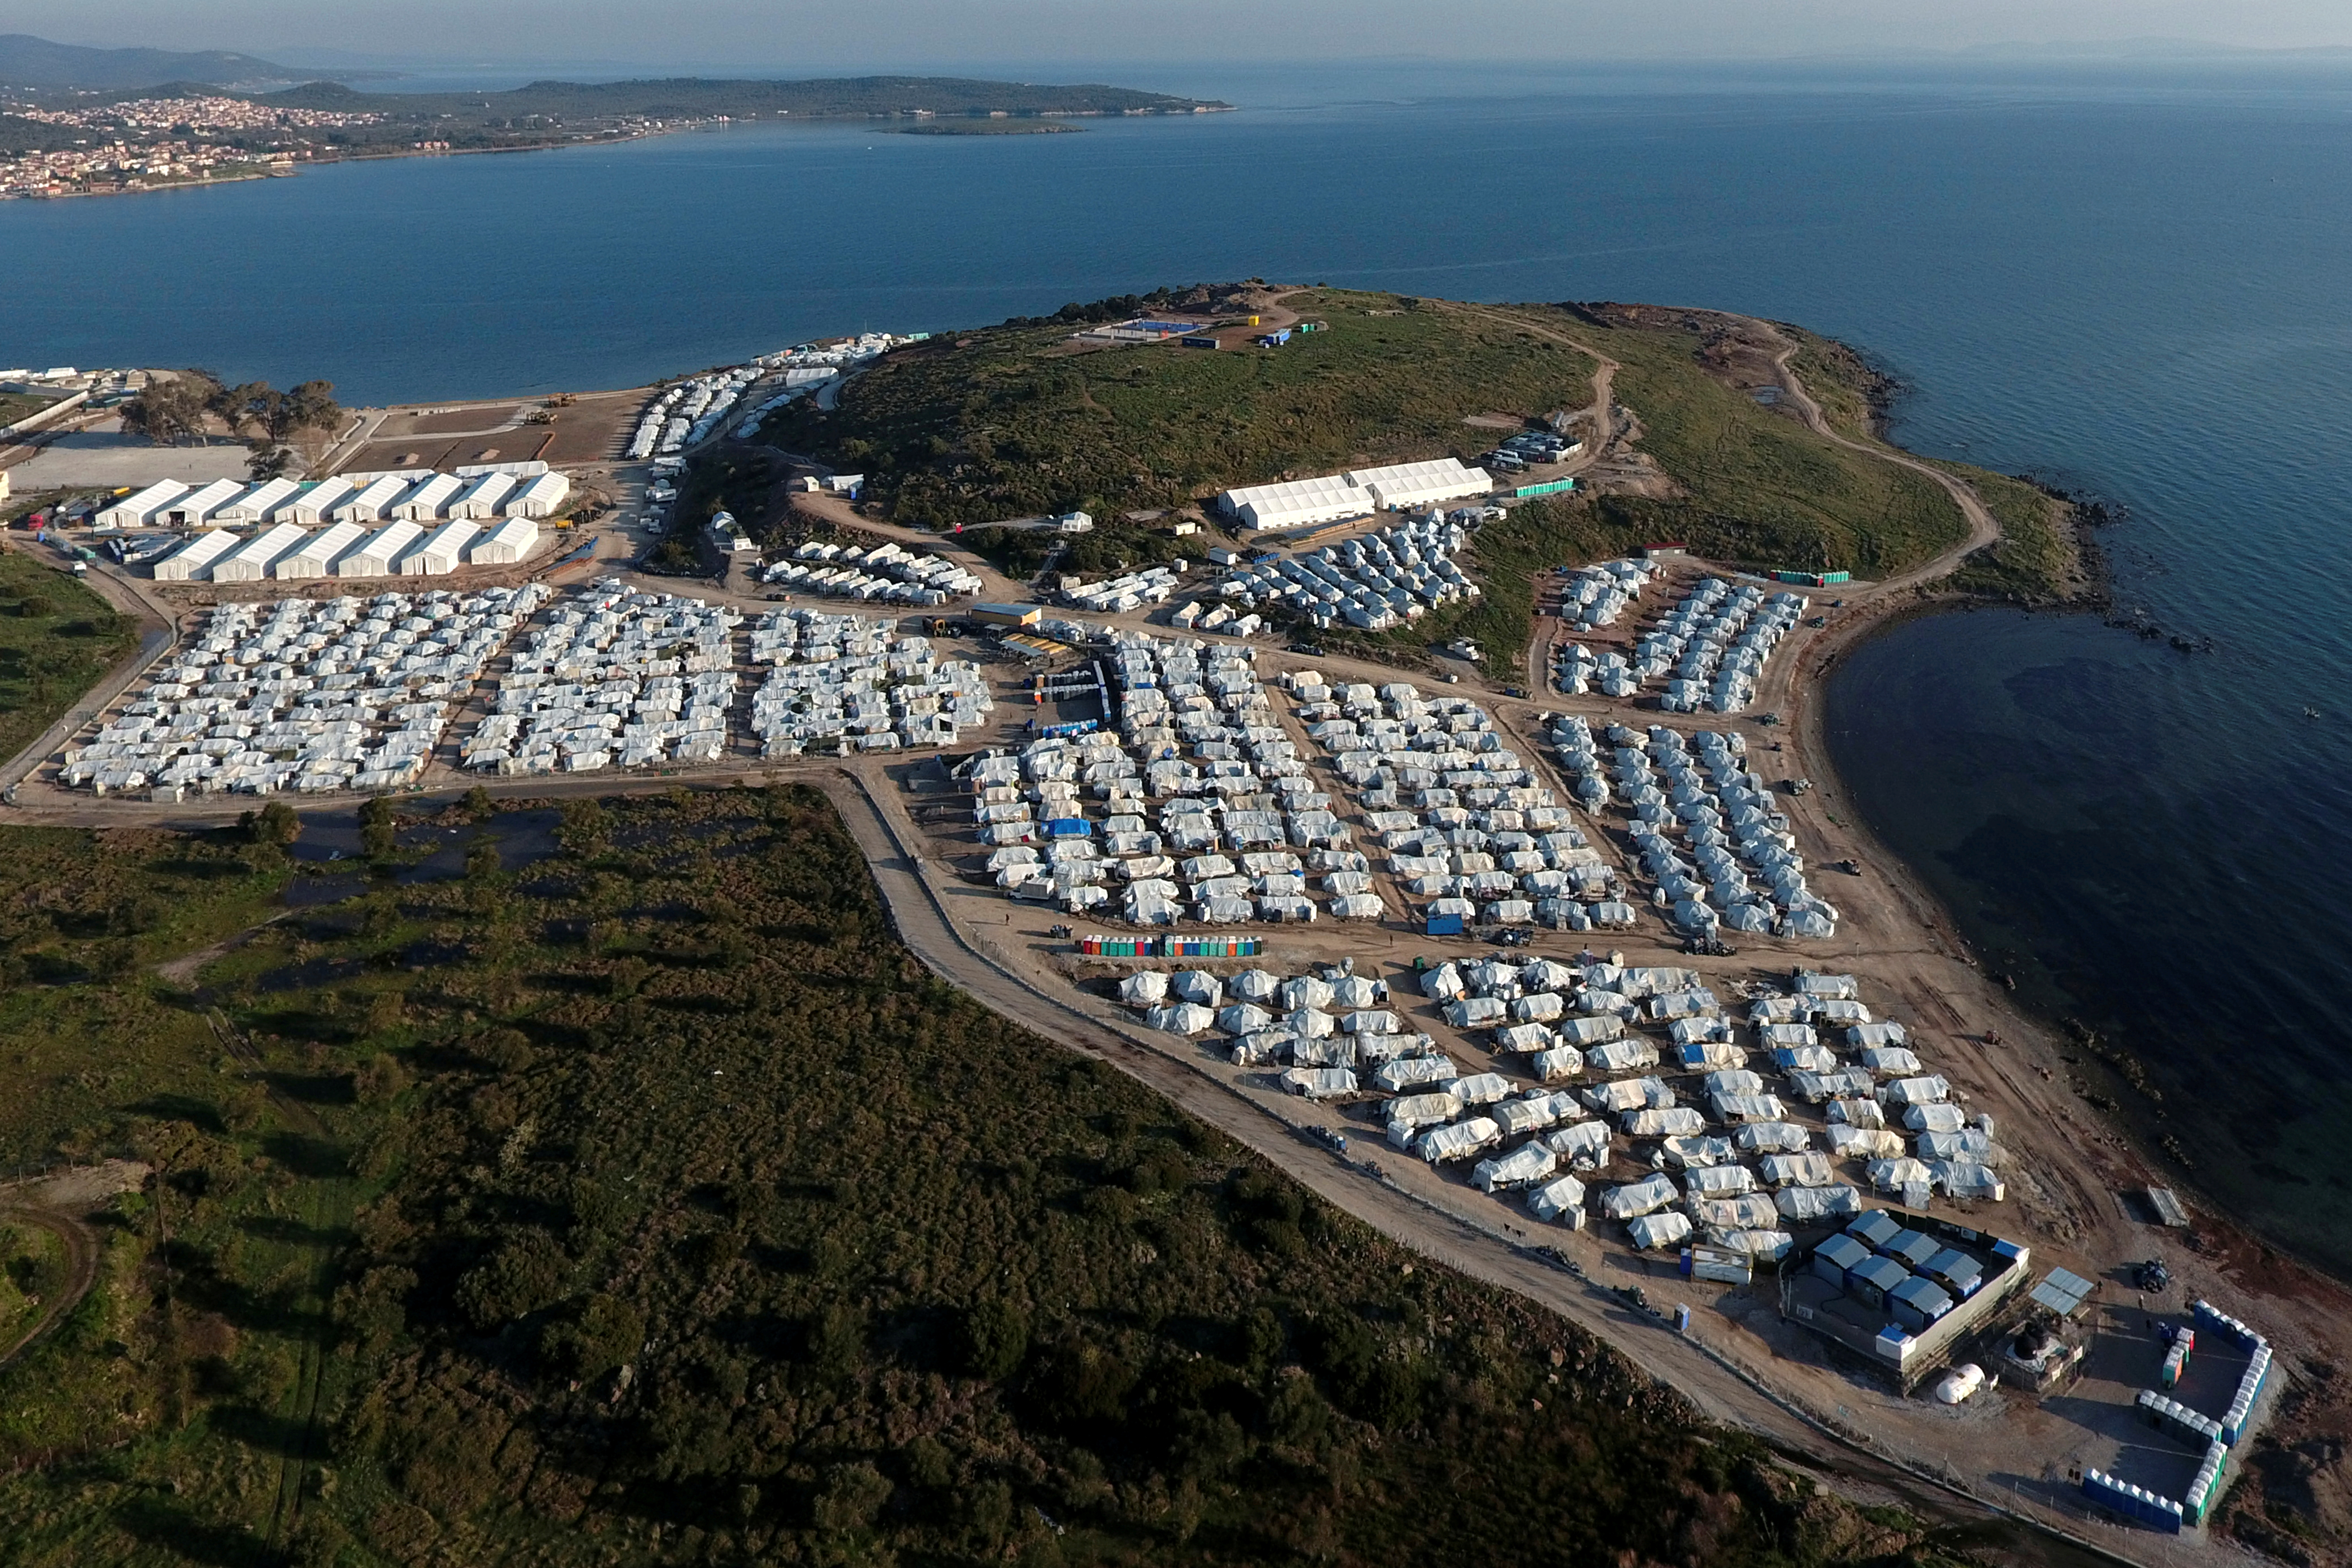 An aerial view of the Mavrovouni camp for refugees and migrants on the island of Lesbos, Greece, March 27, 2021. Picture taken with a drone. REUTERS/Giorgos Moutafis